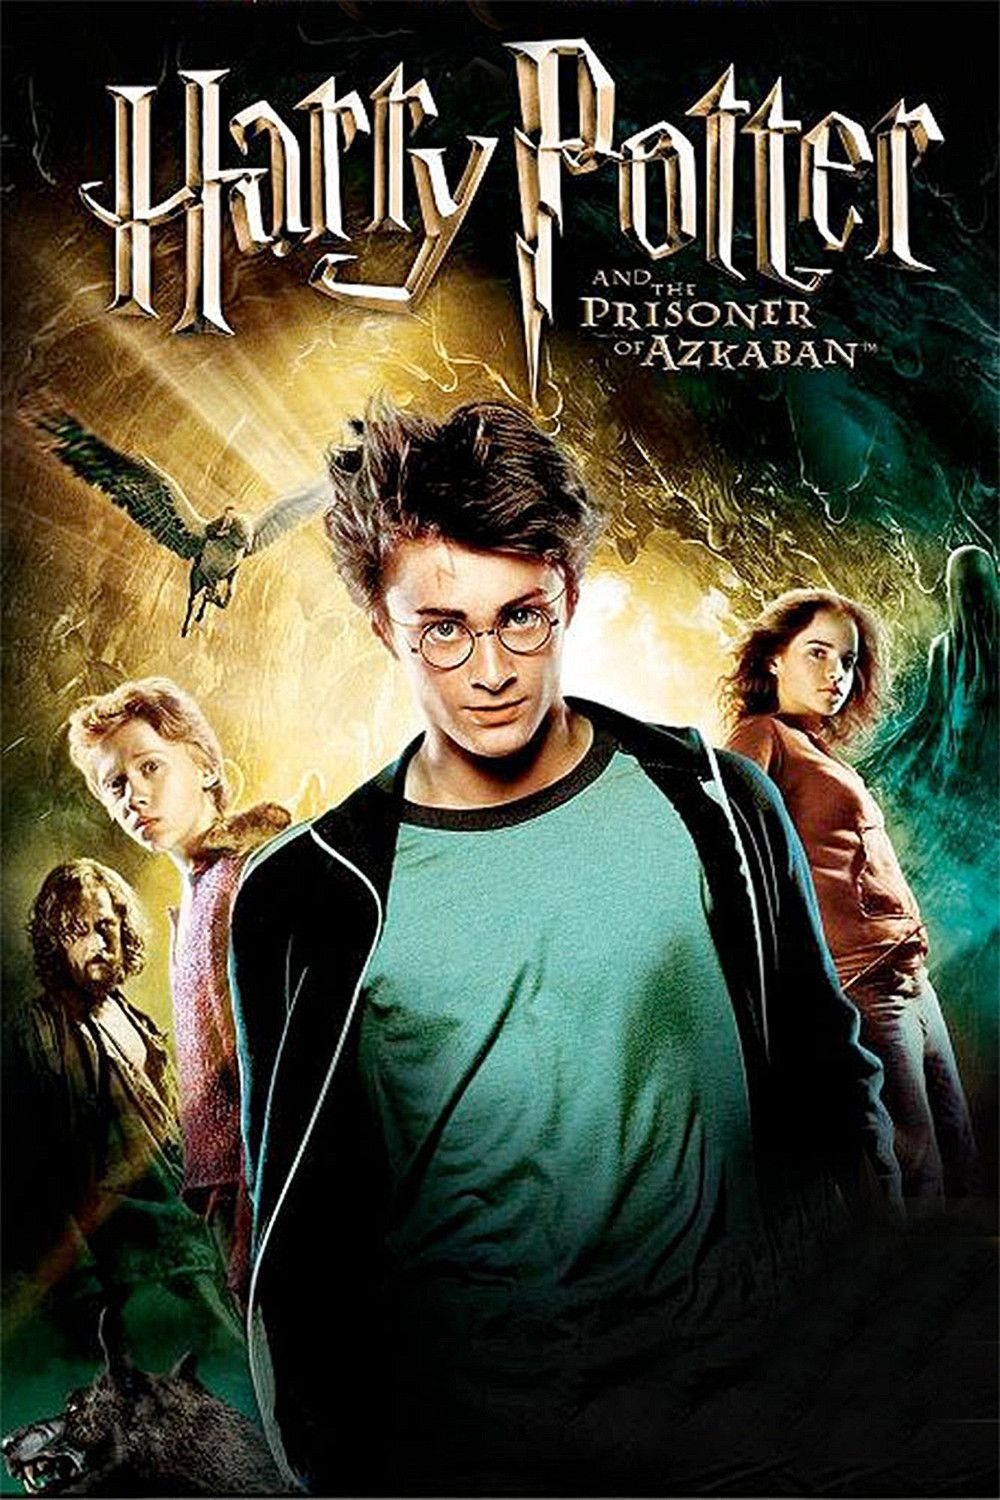 Watch Now Harry Potter And The Prisoner Of Azkaban For Free In 2021 The Prisoner Of Azkaban Prisoner Of Azkaban Harry Potter